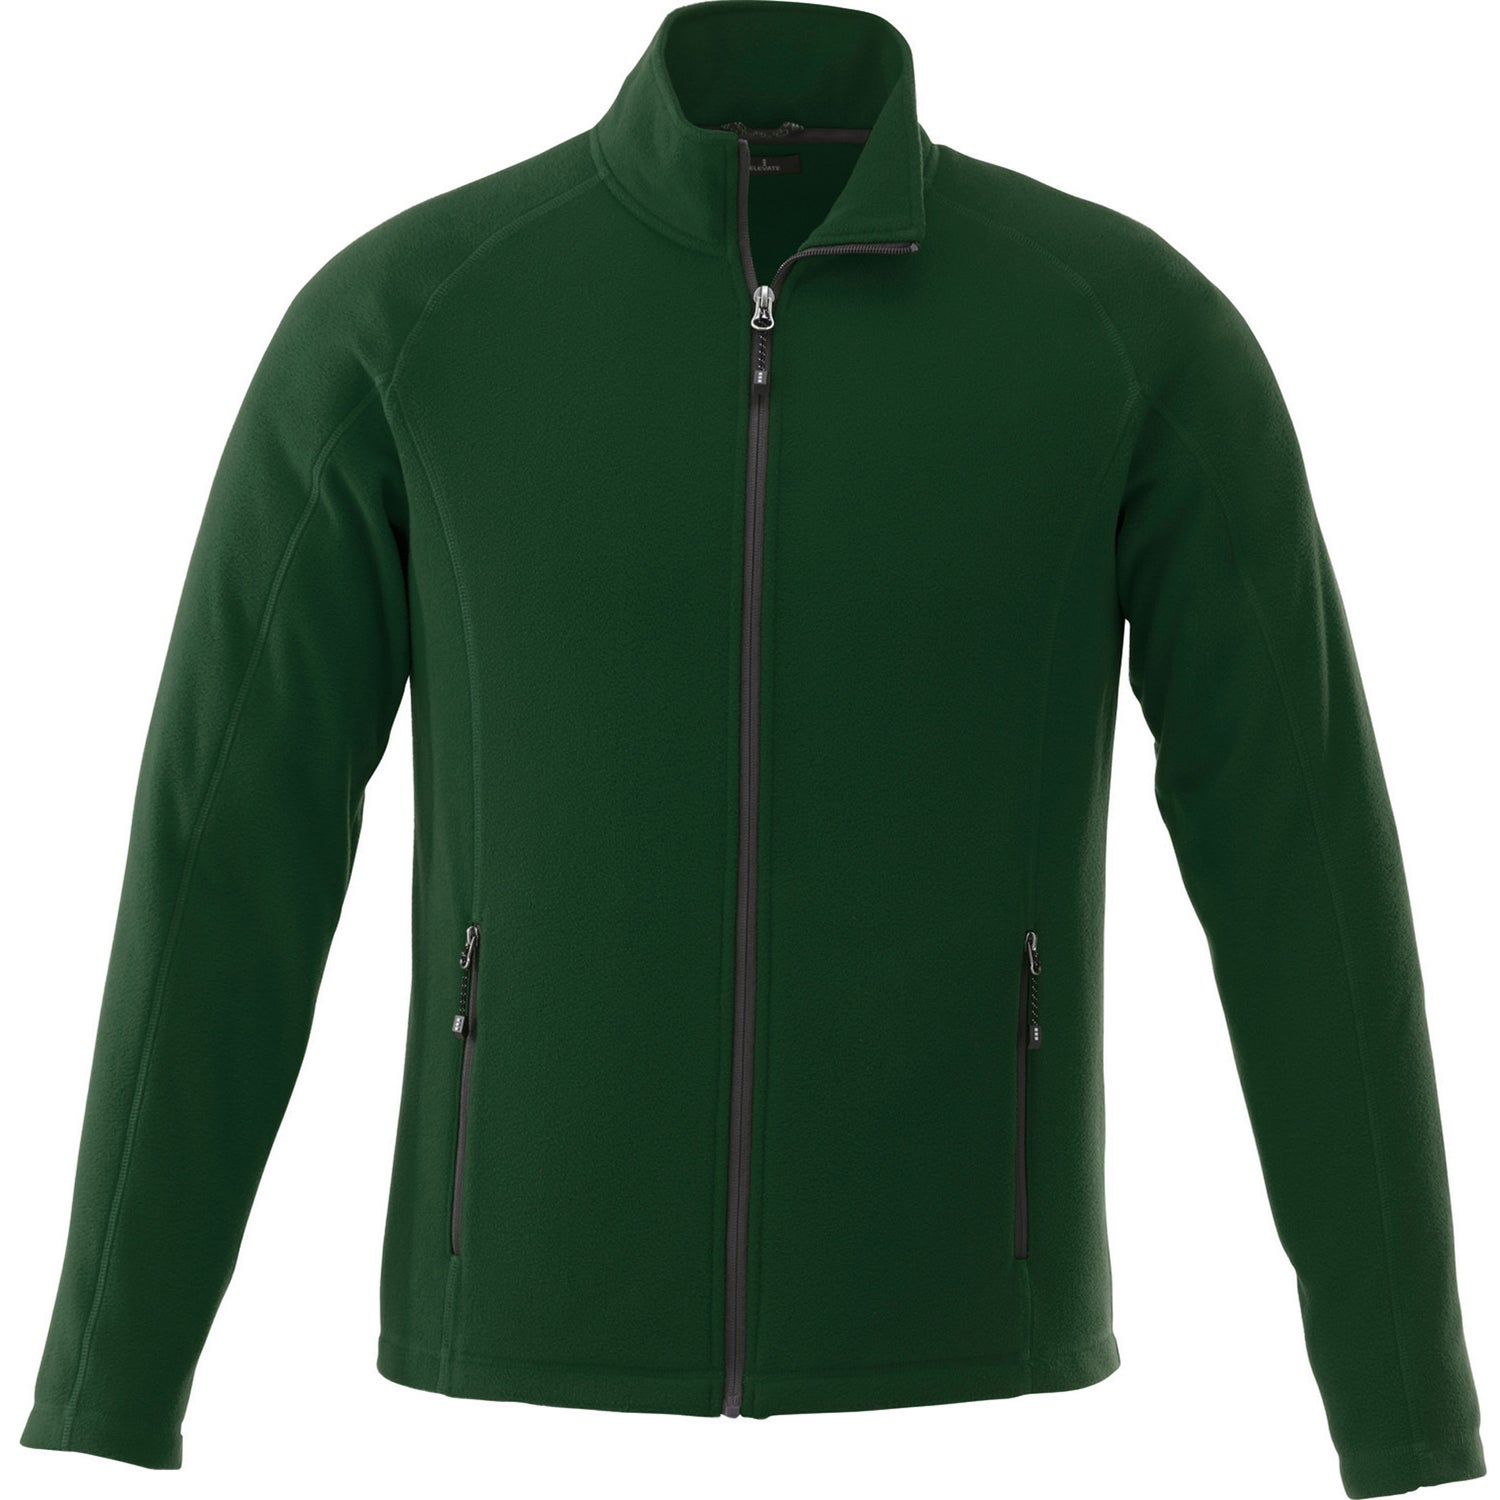 rixford online dating Rixford polyfleece jacket - ladies' style #: 8745-tm98130 the rixford polyfleece is the perfect jacket for a chilly day this comfortable and versatile garment is .